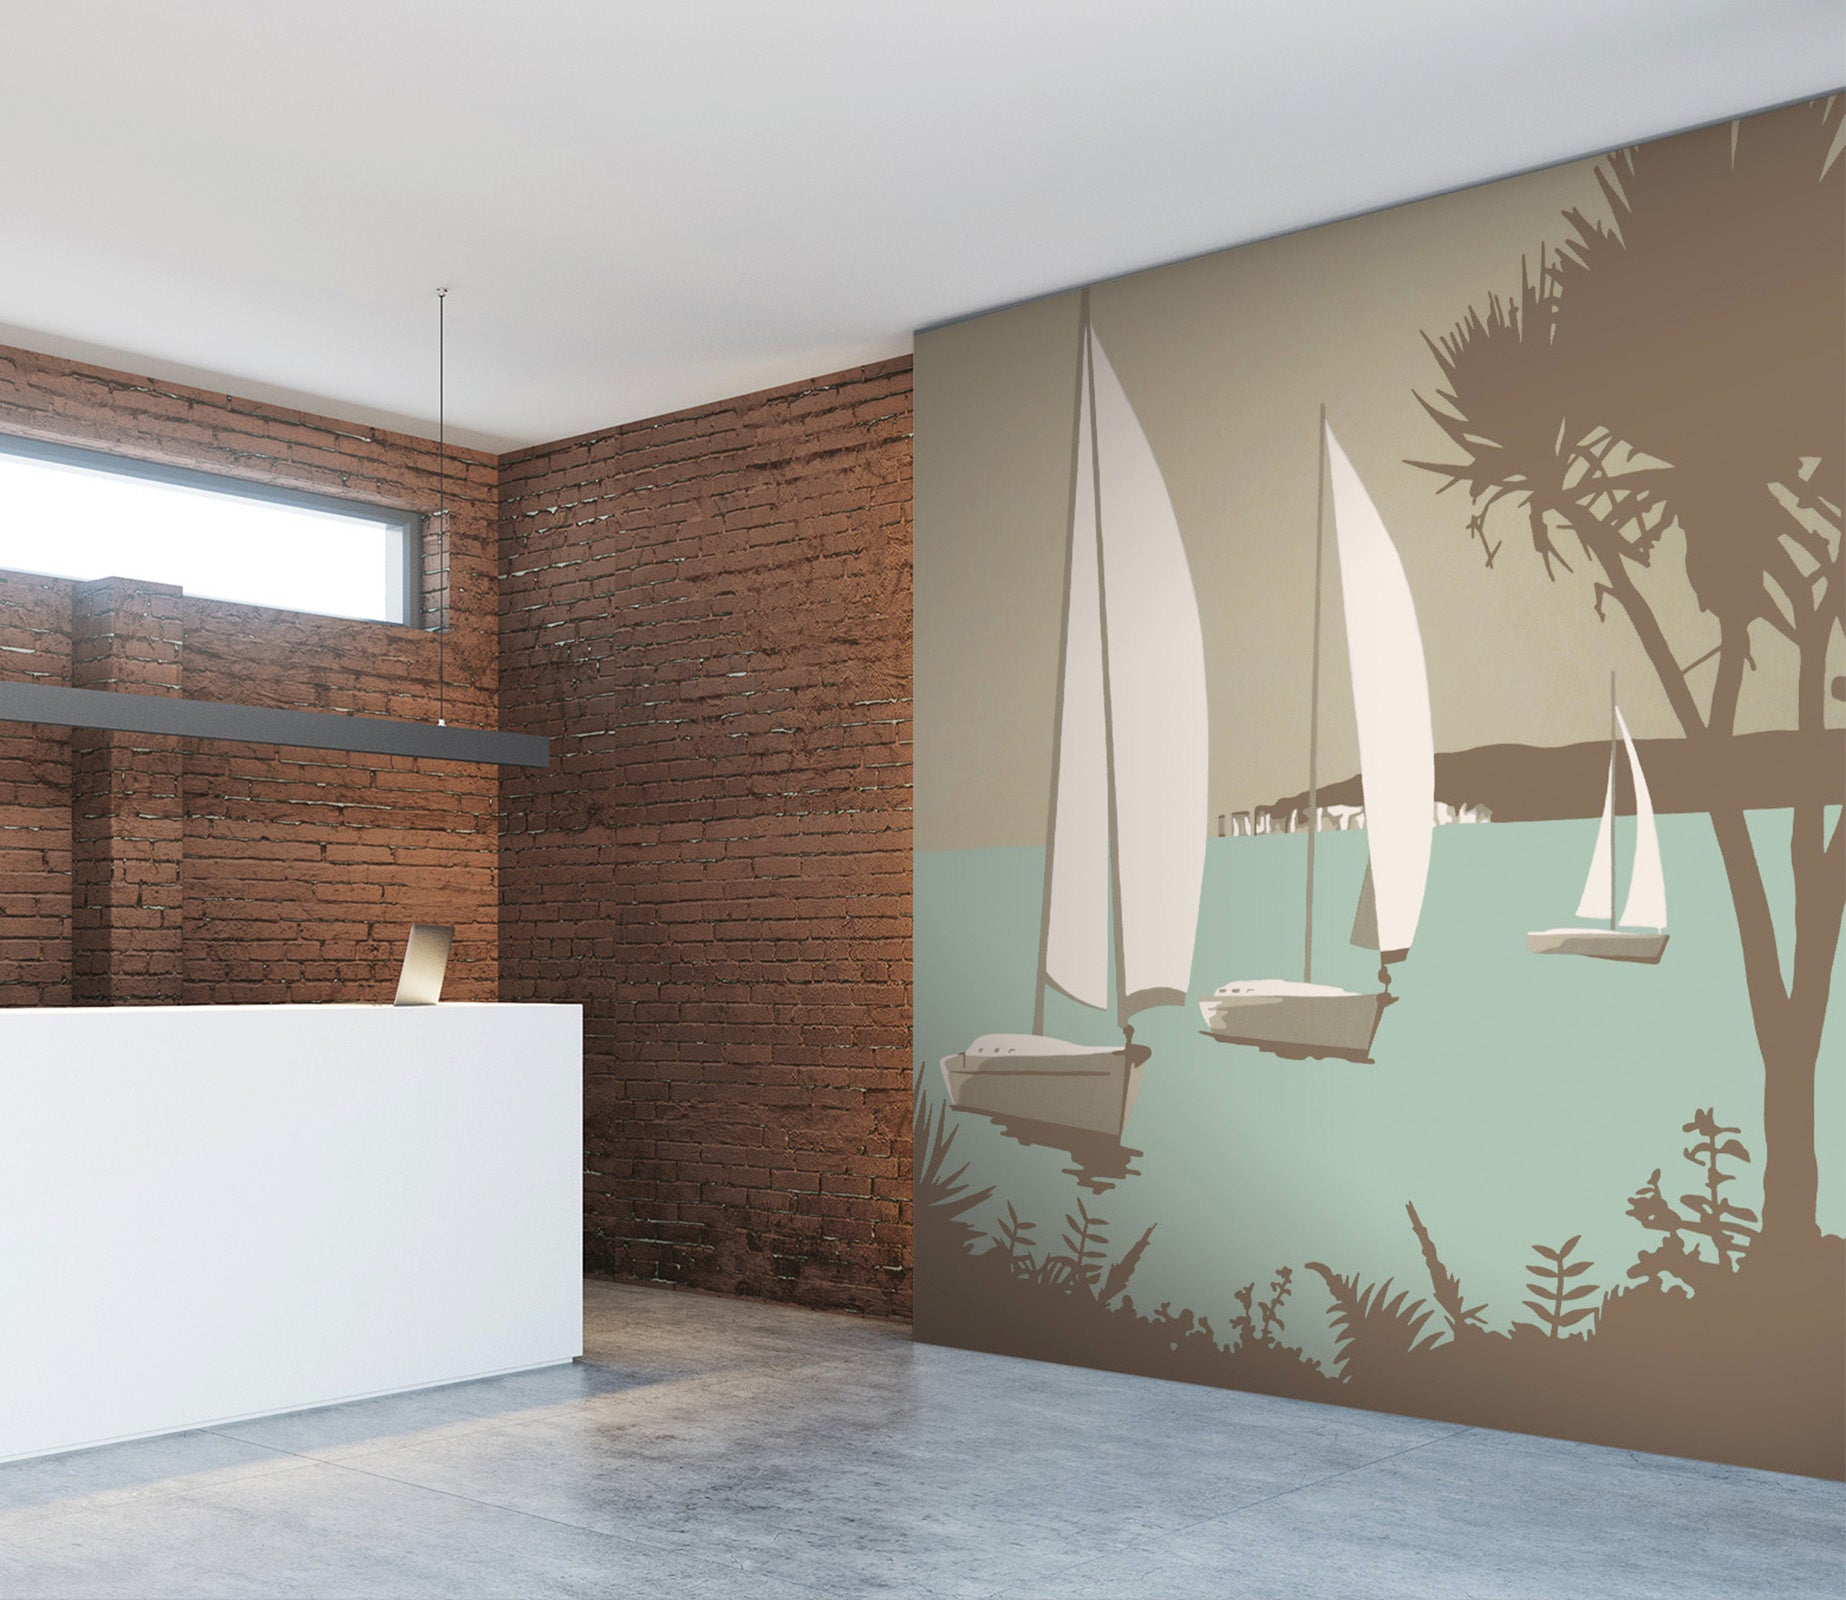 3D Poole The Purbecks 1041 Steve Read Wall Mural Wall Murals